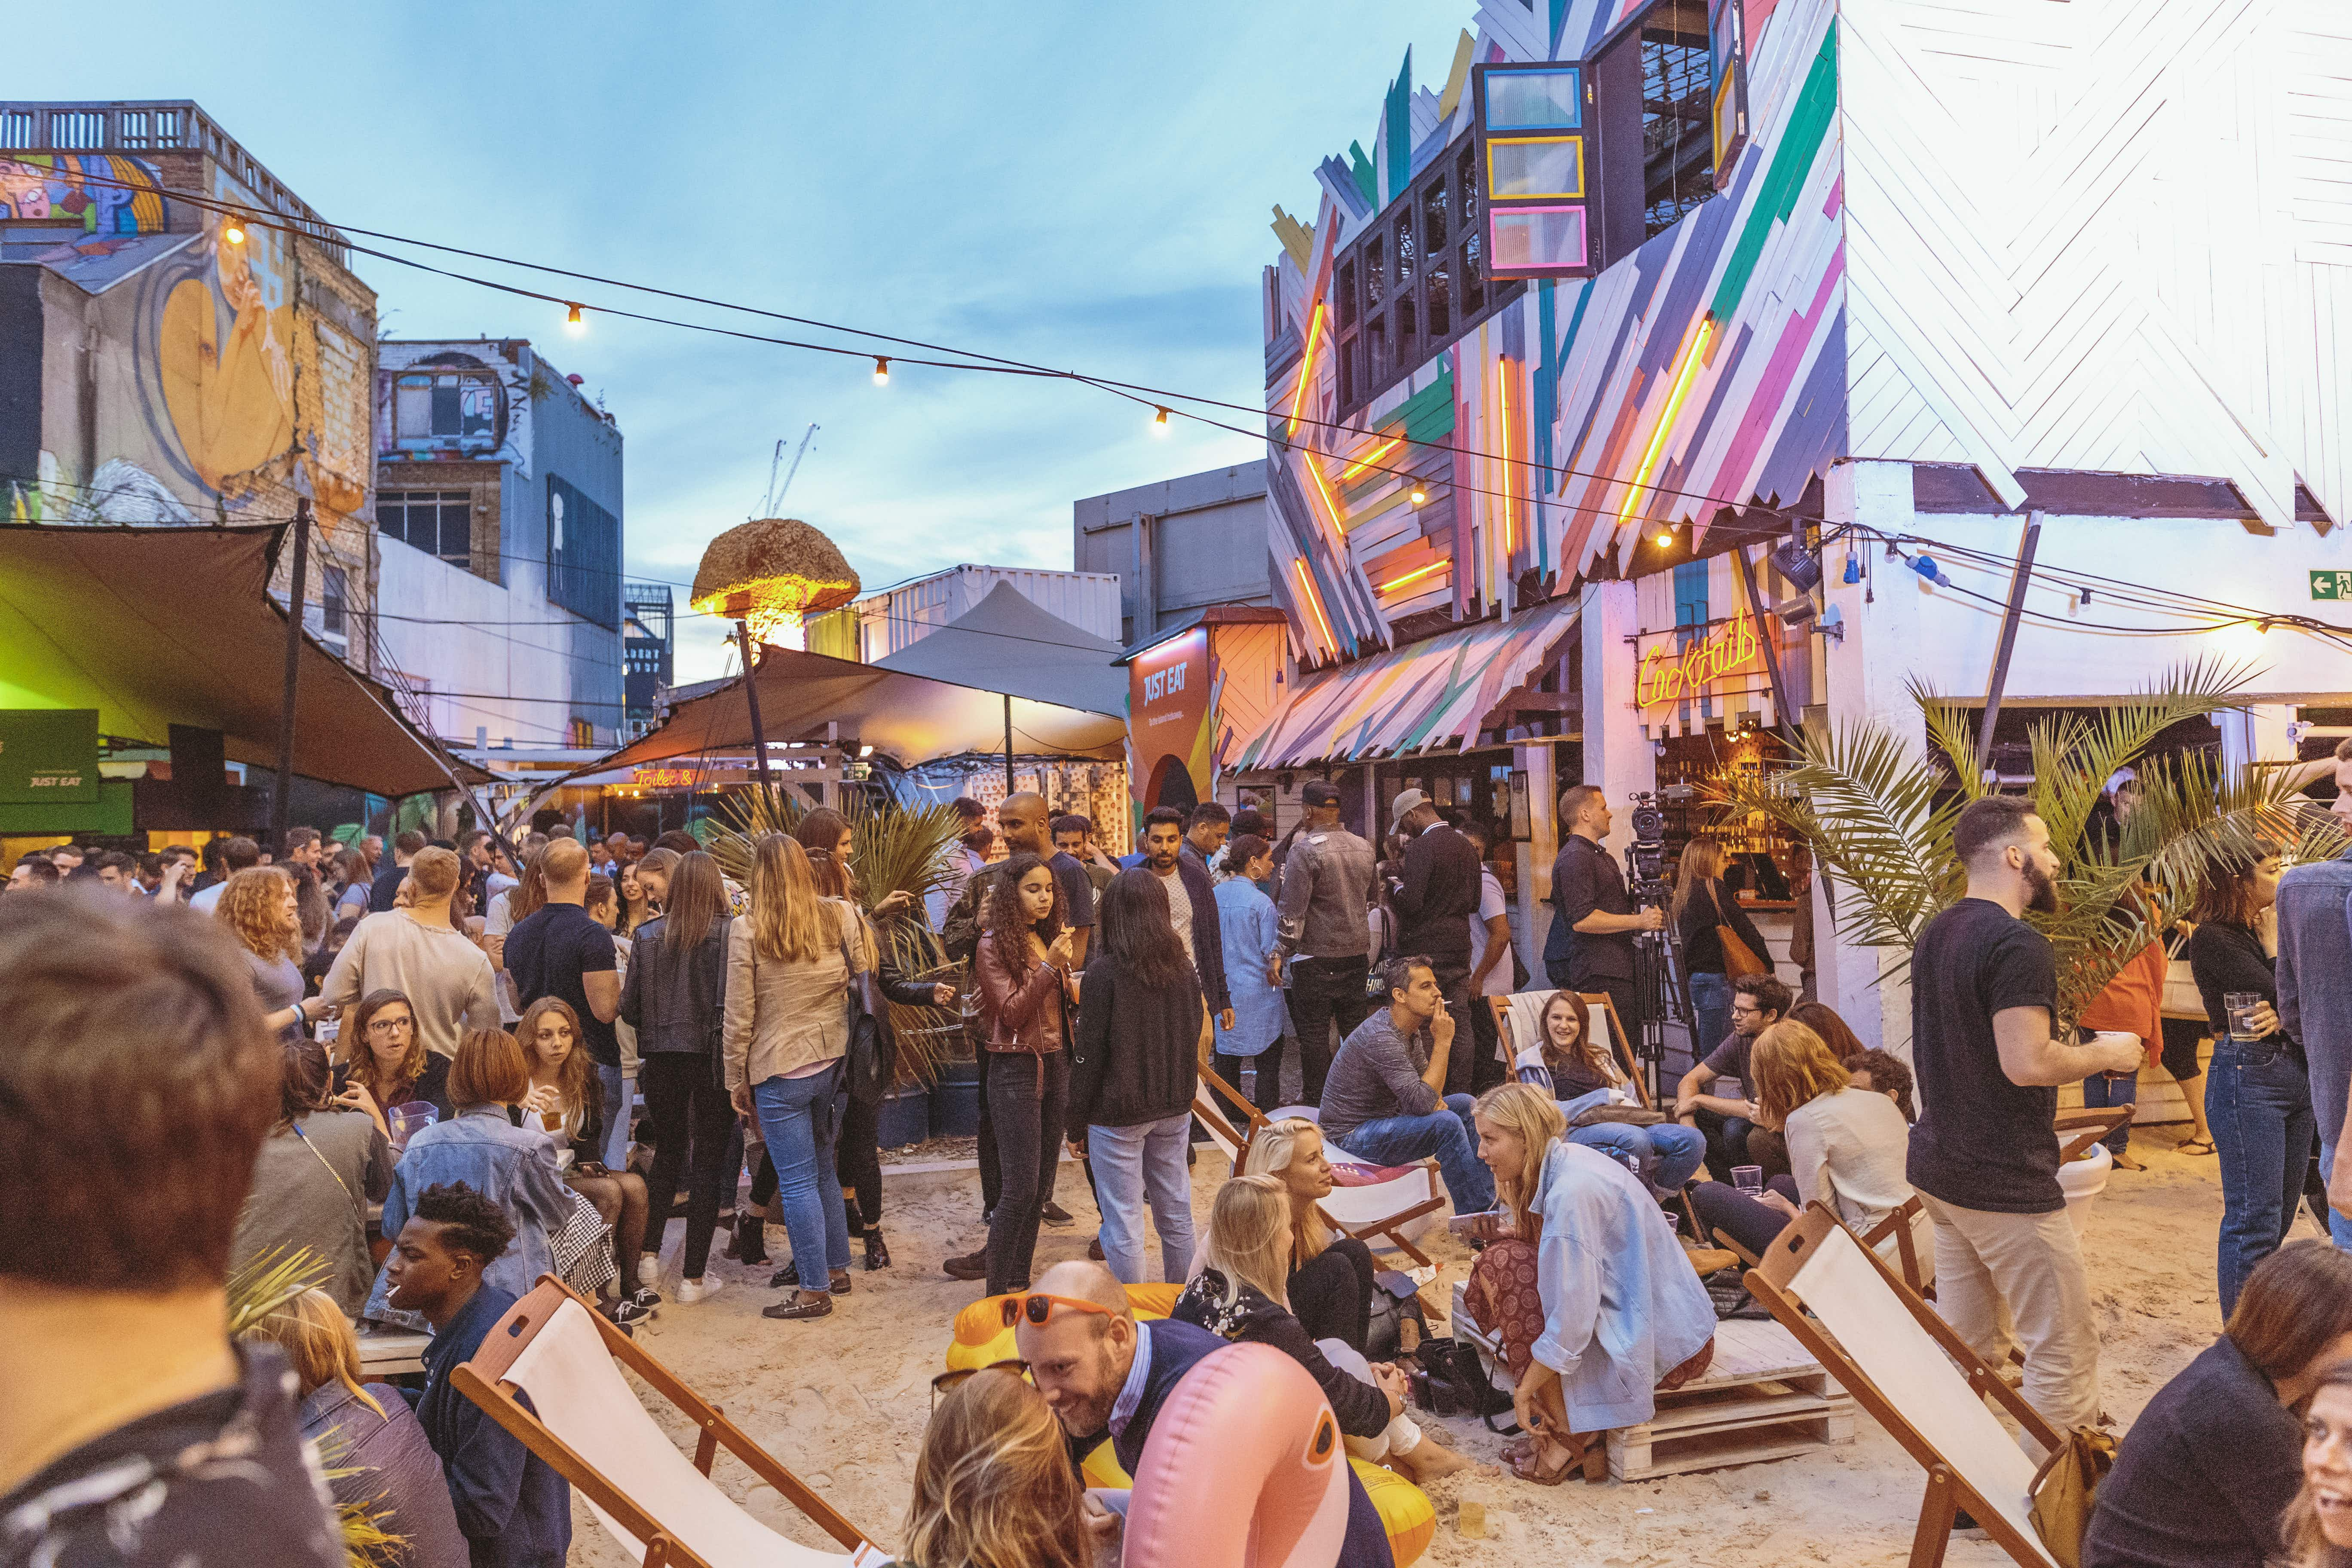 'Oktoberfest' comes to London with break-dancers, Hasselhoff karaoke and bratwurst-eating challenges